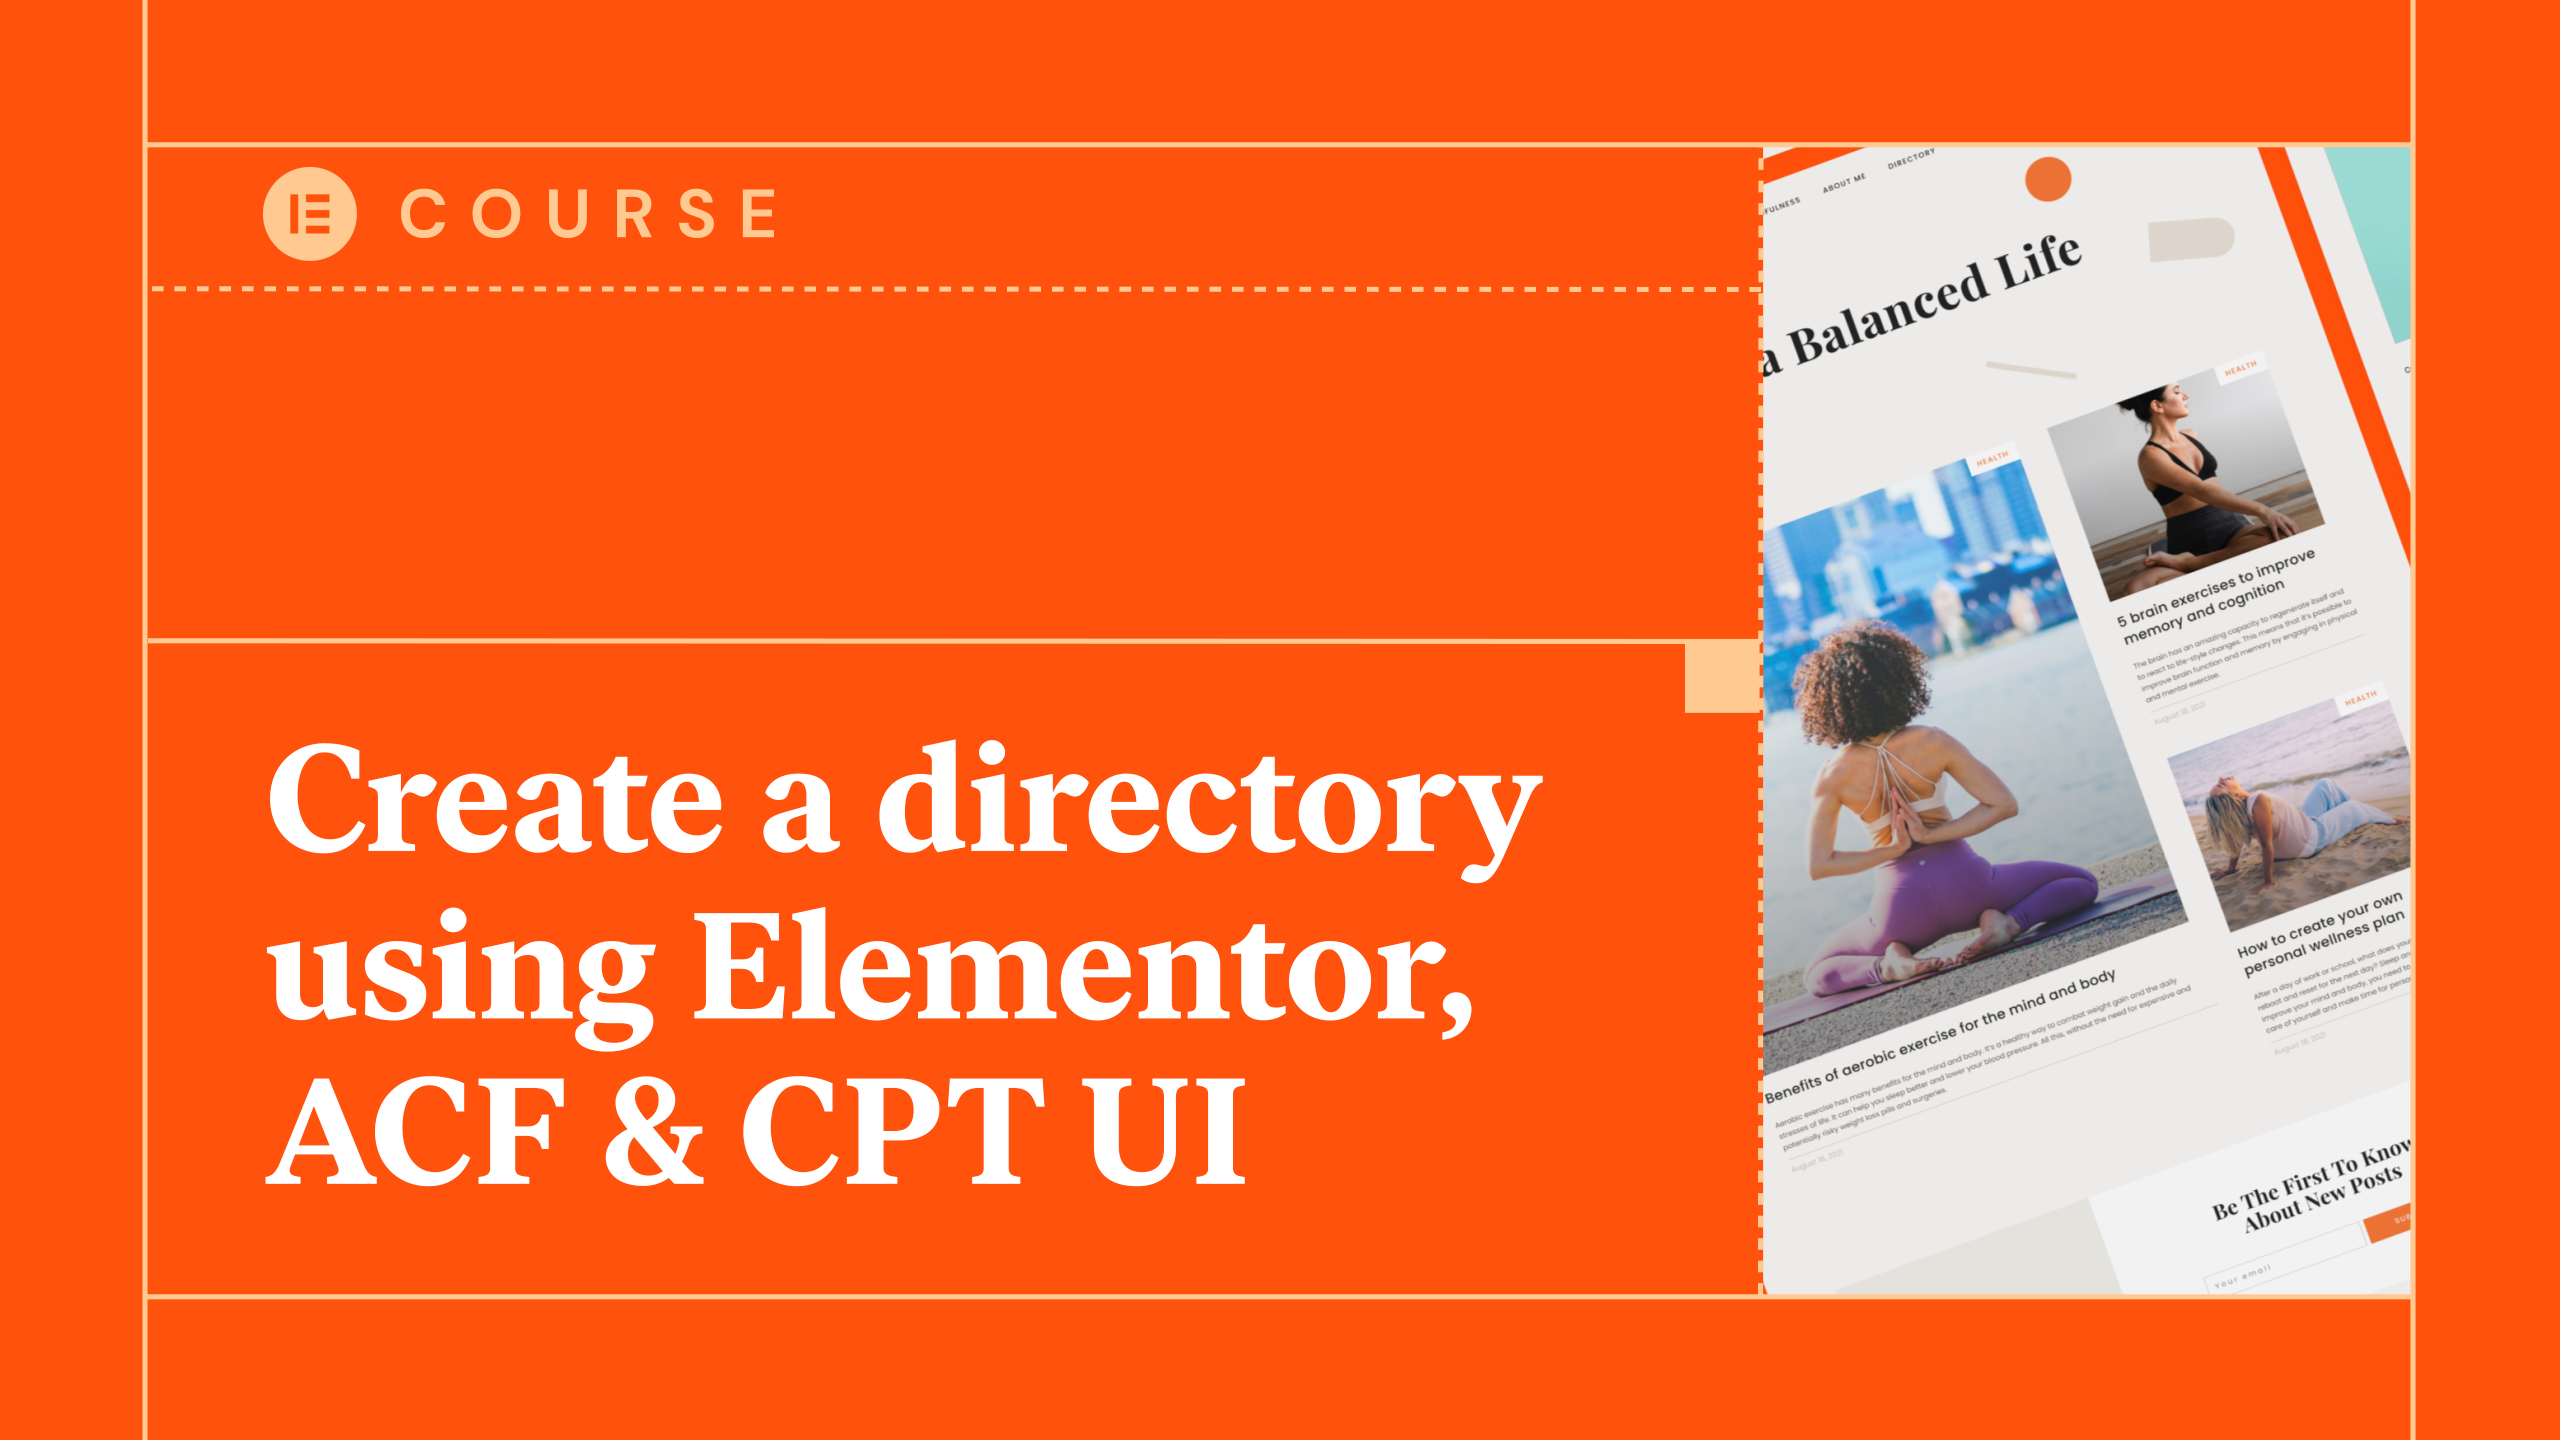 Create a directory using Elementor, ACF & CPT UI